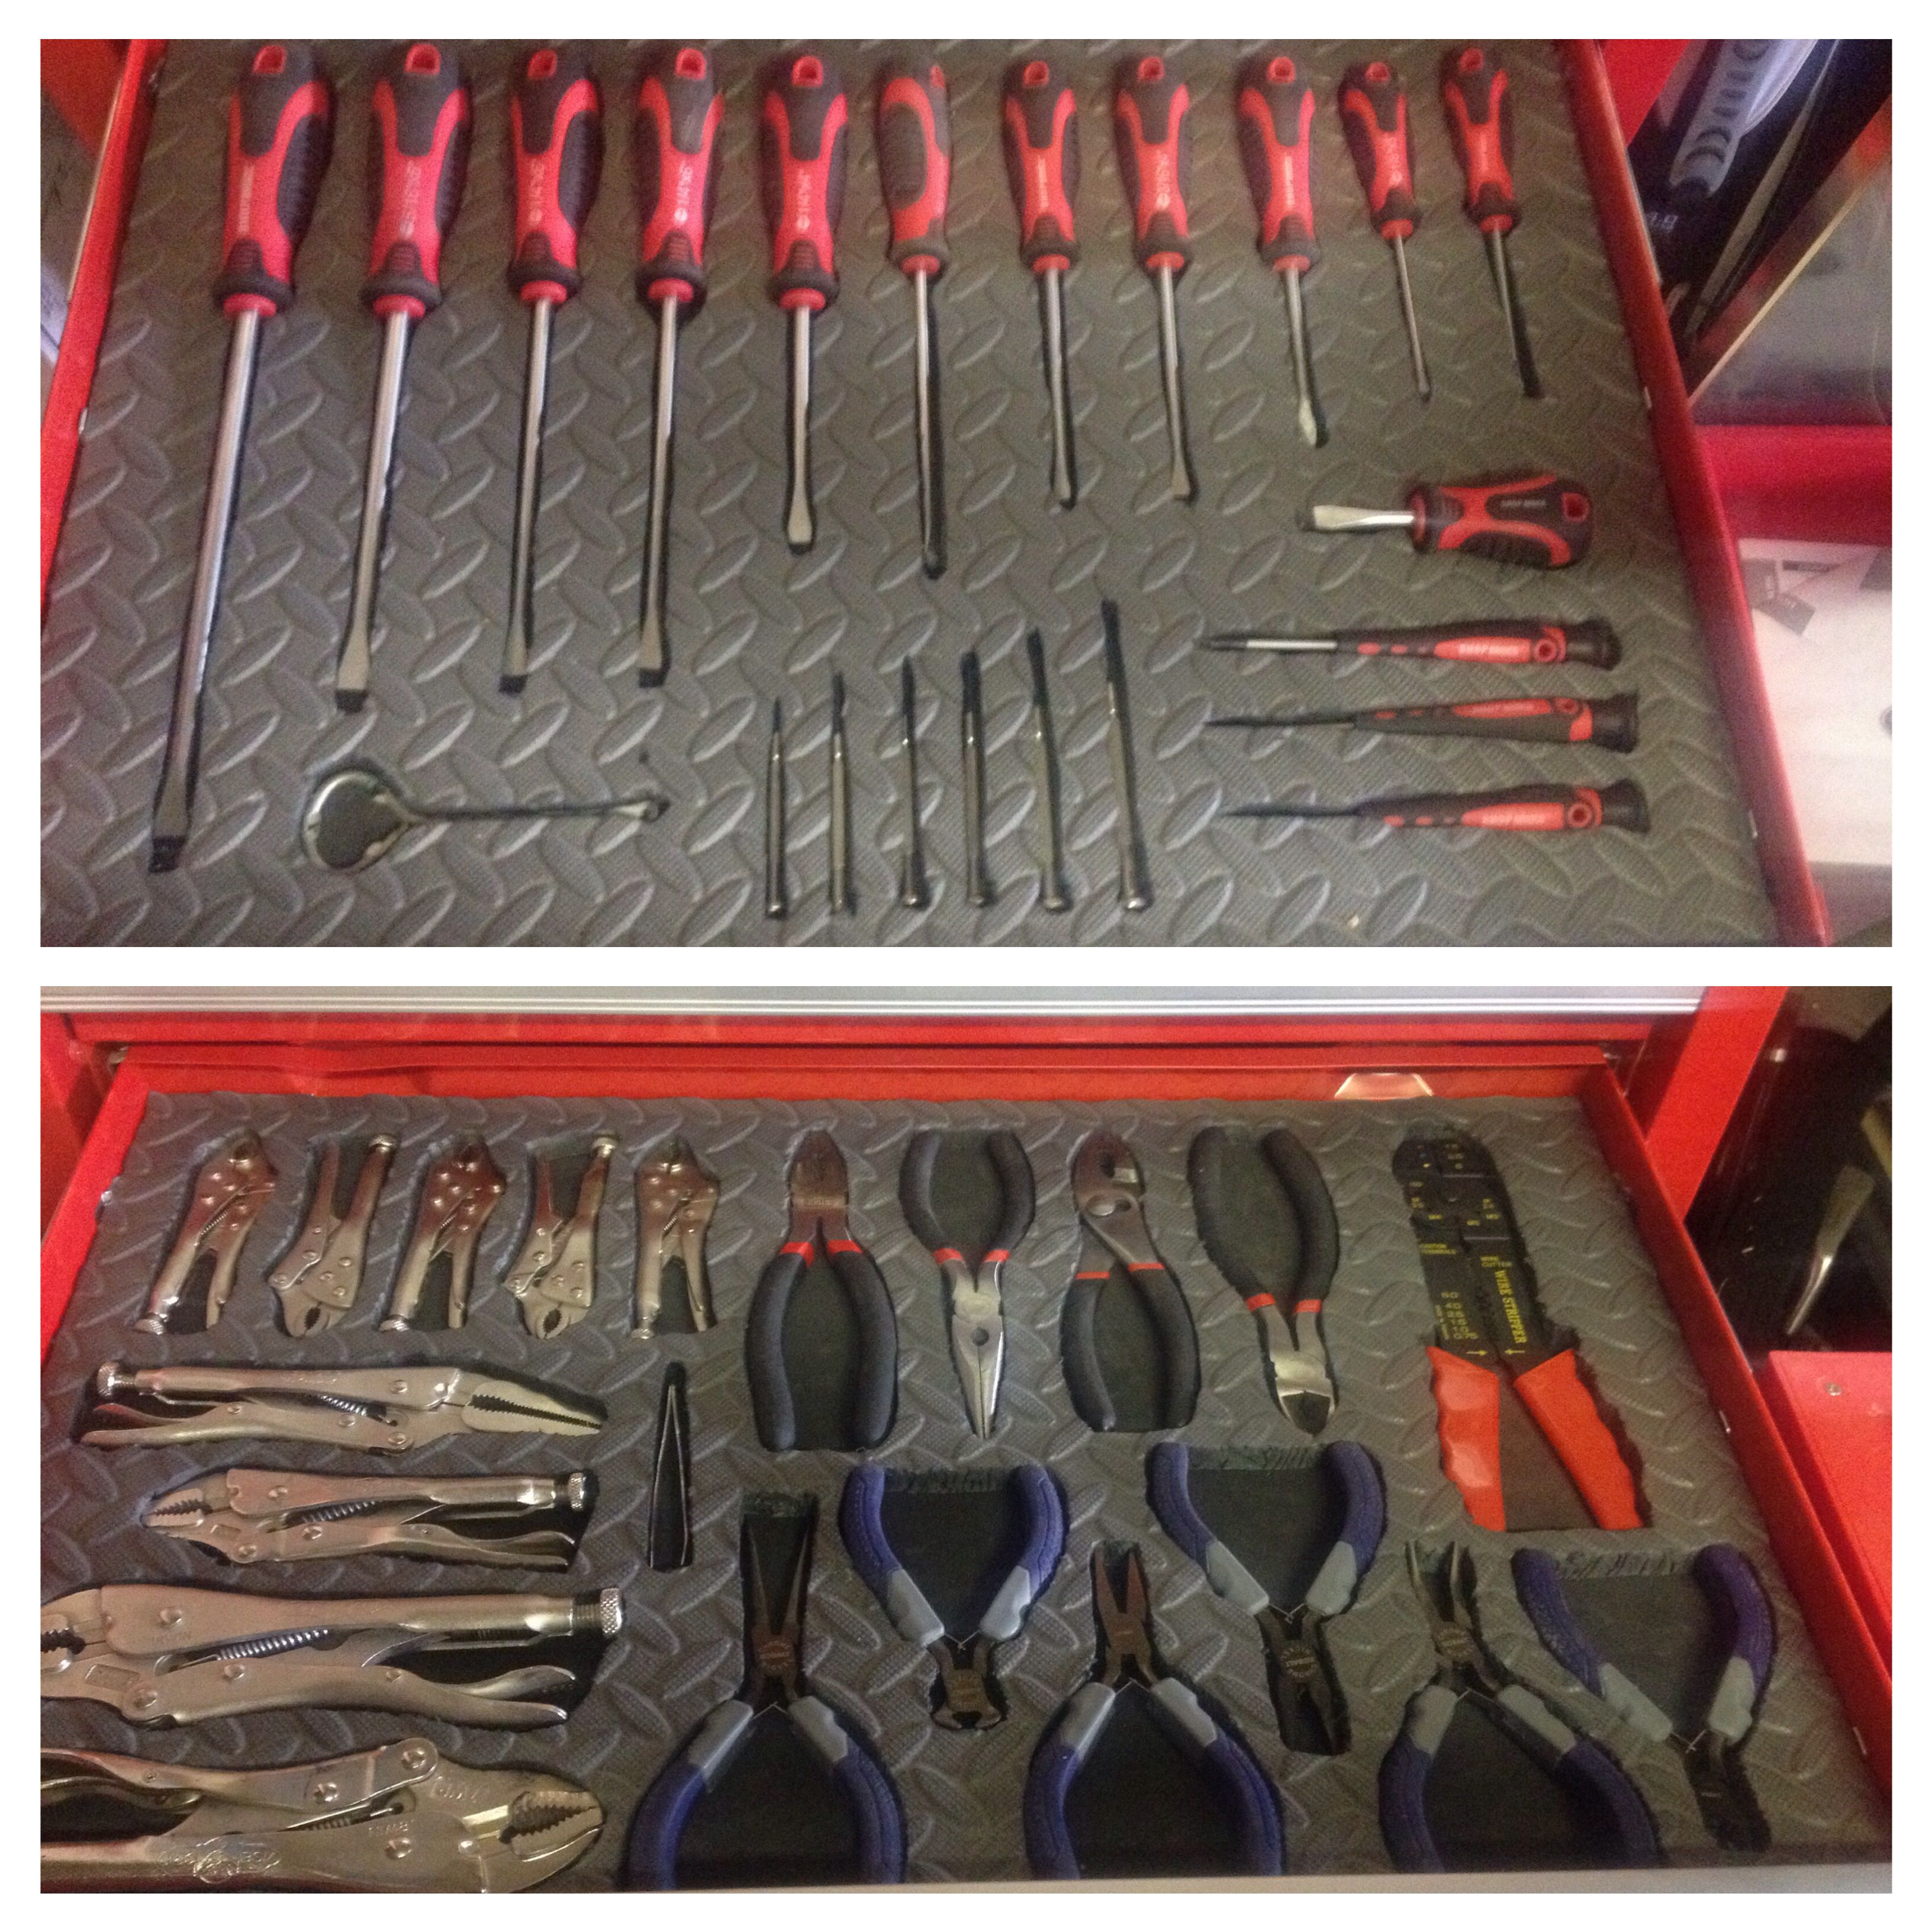 Made my own shadowed tool box using a hot knife and foam floor ...